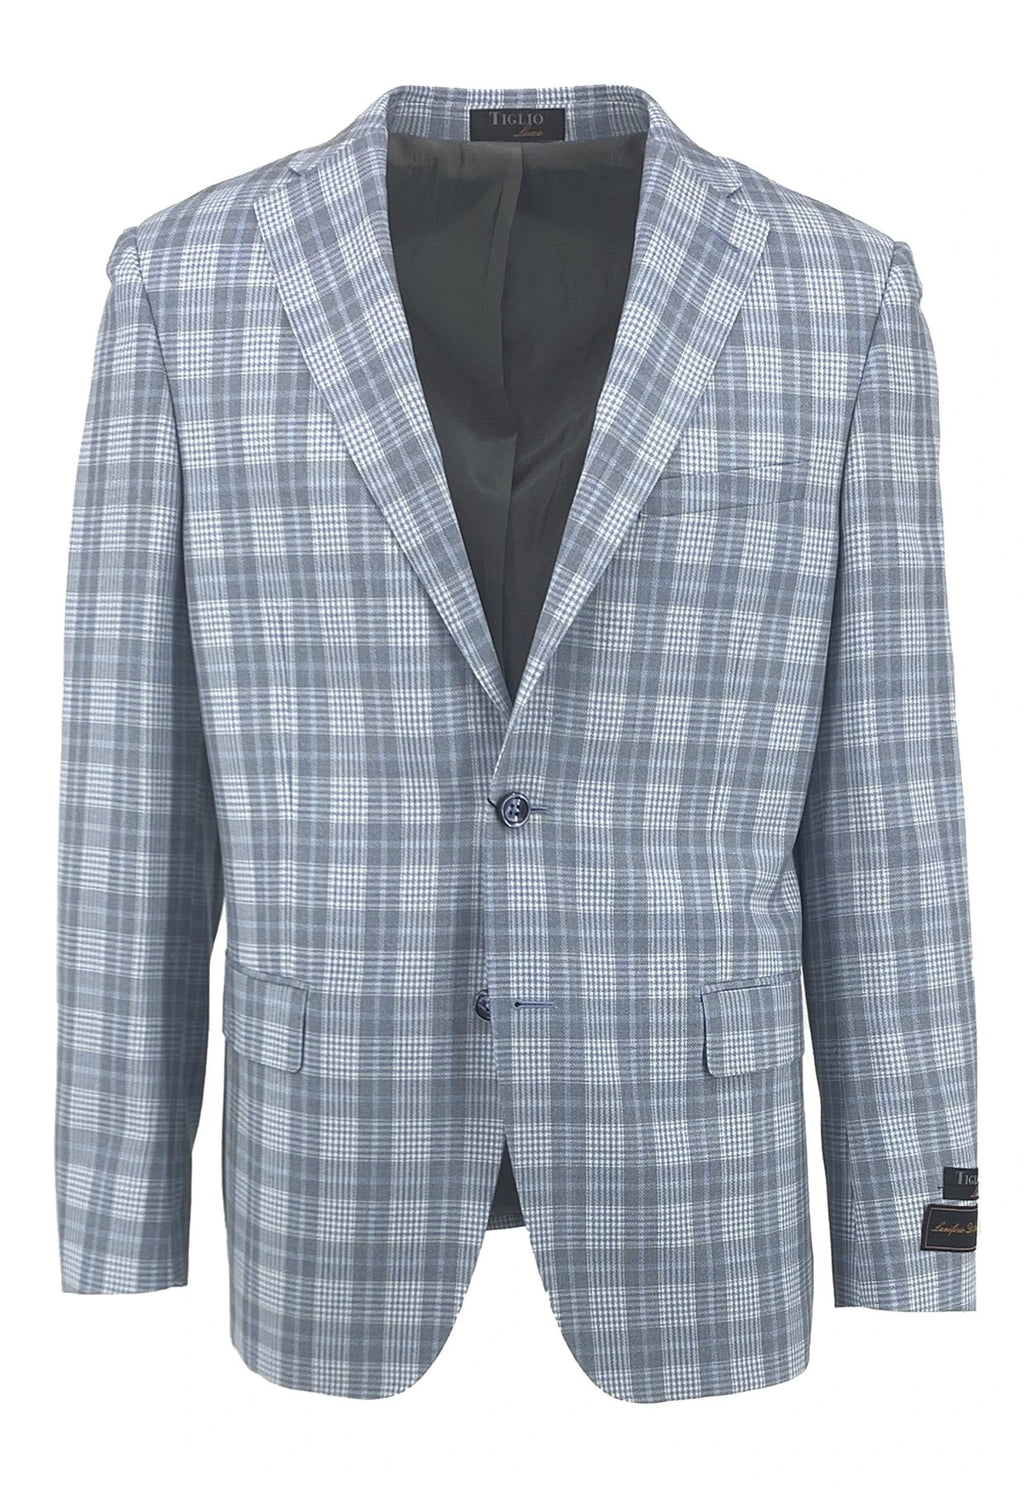 Dolcetto Light Blue with Gray and White Windowpane Modern Fit, Pure Wool Jacket by Tiglio Luxe TLS20030/1